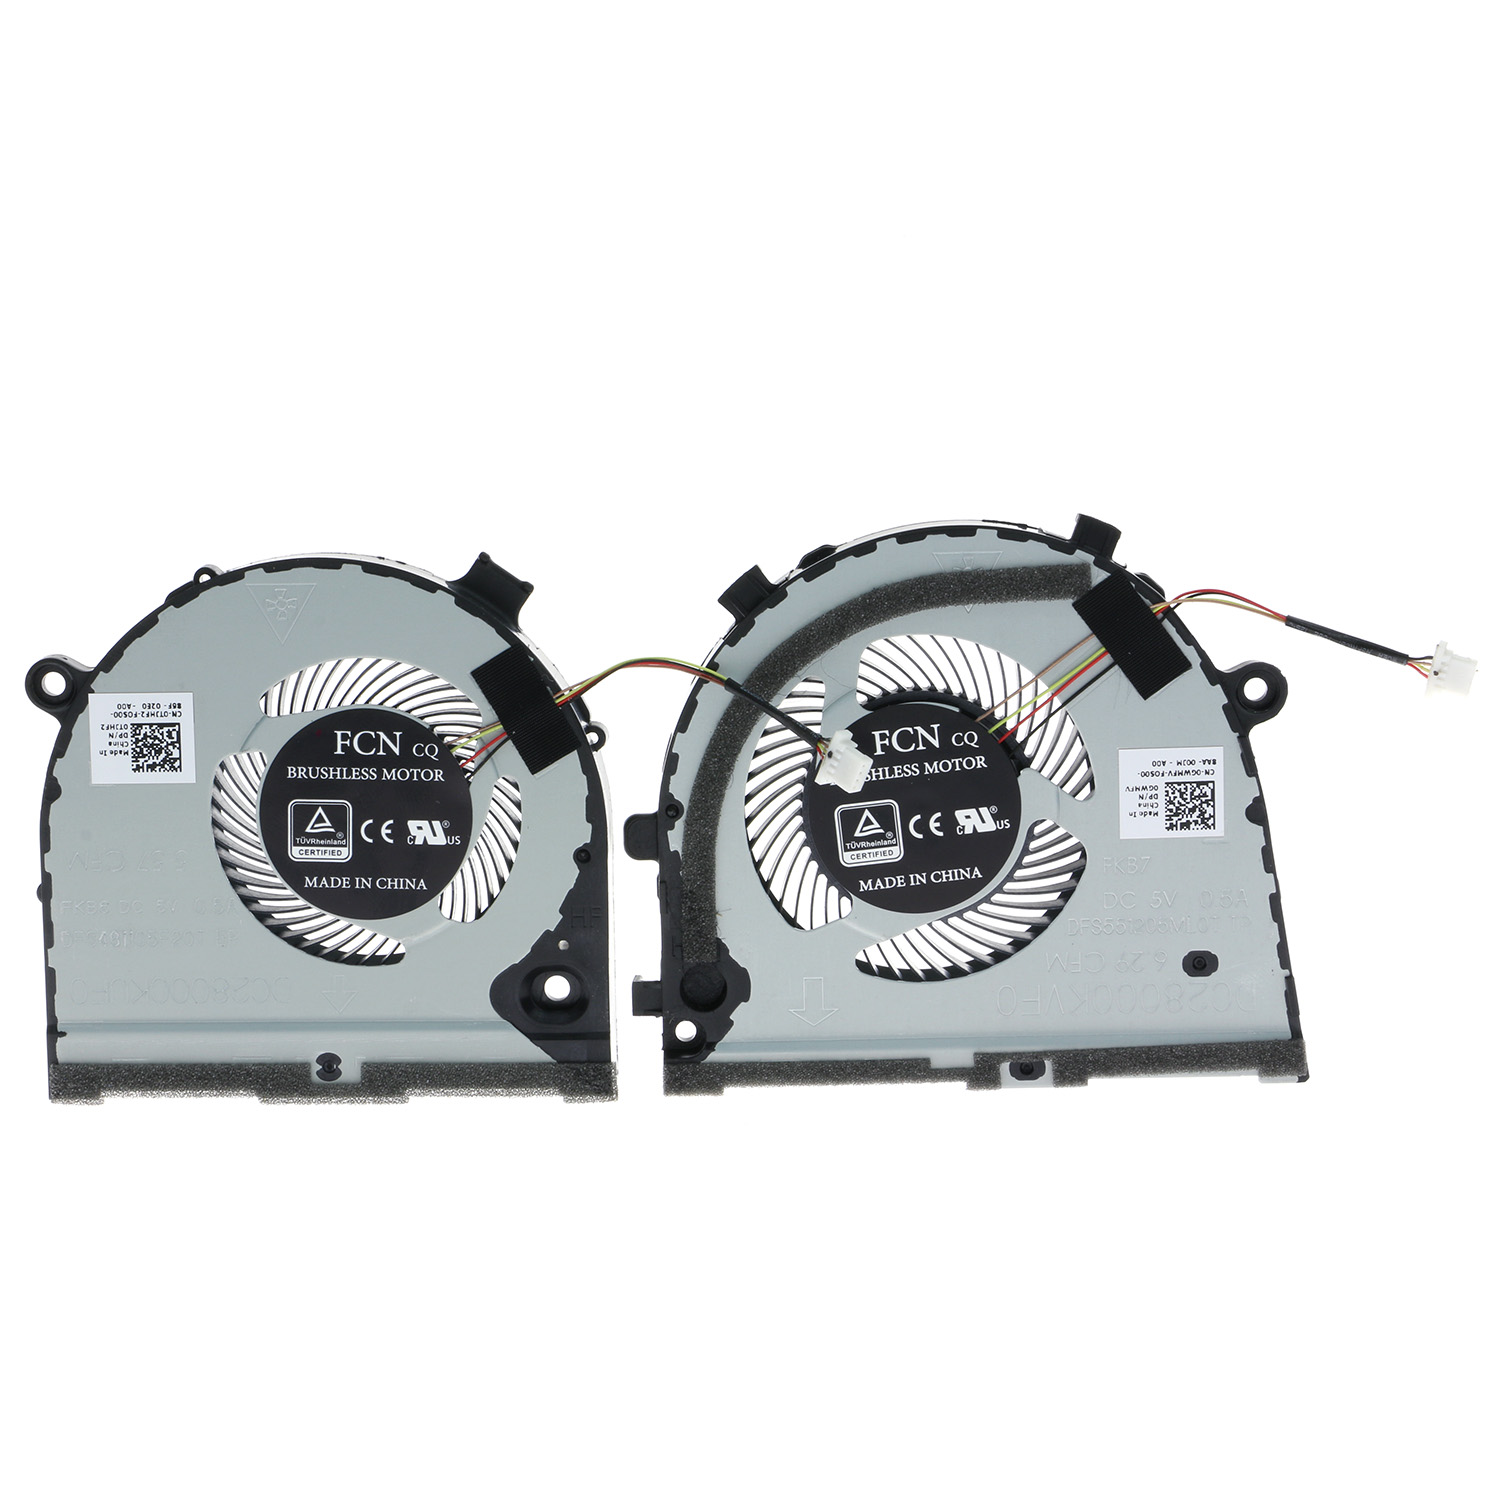 Details about TJHF2 GWMFV CPU GPU Cooling Fan For Dell inspiron Game G3  G3-3579 3779 G5 5587